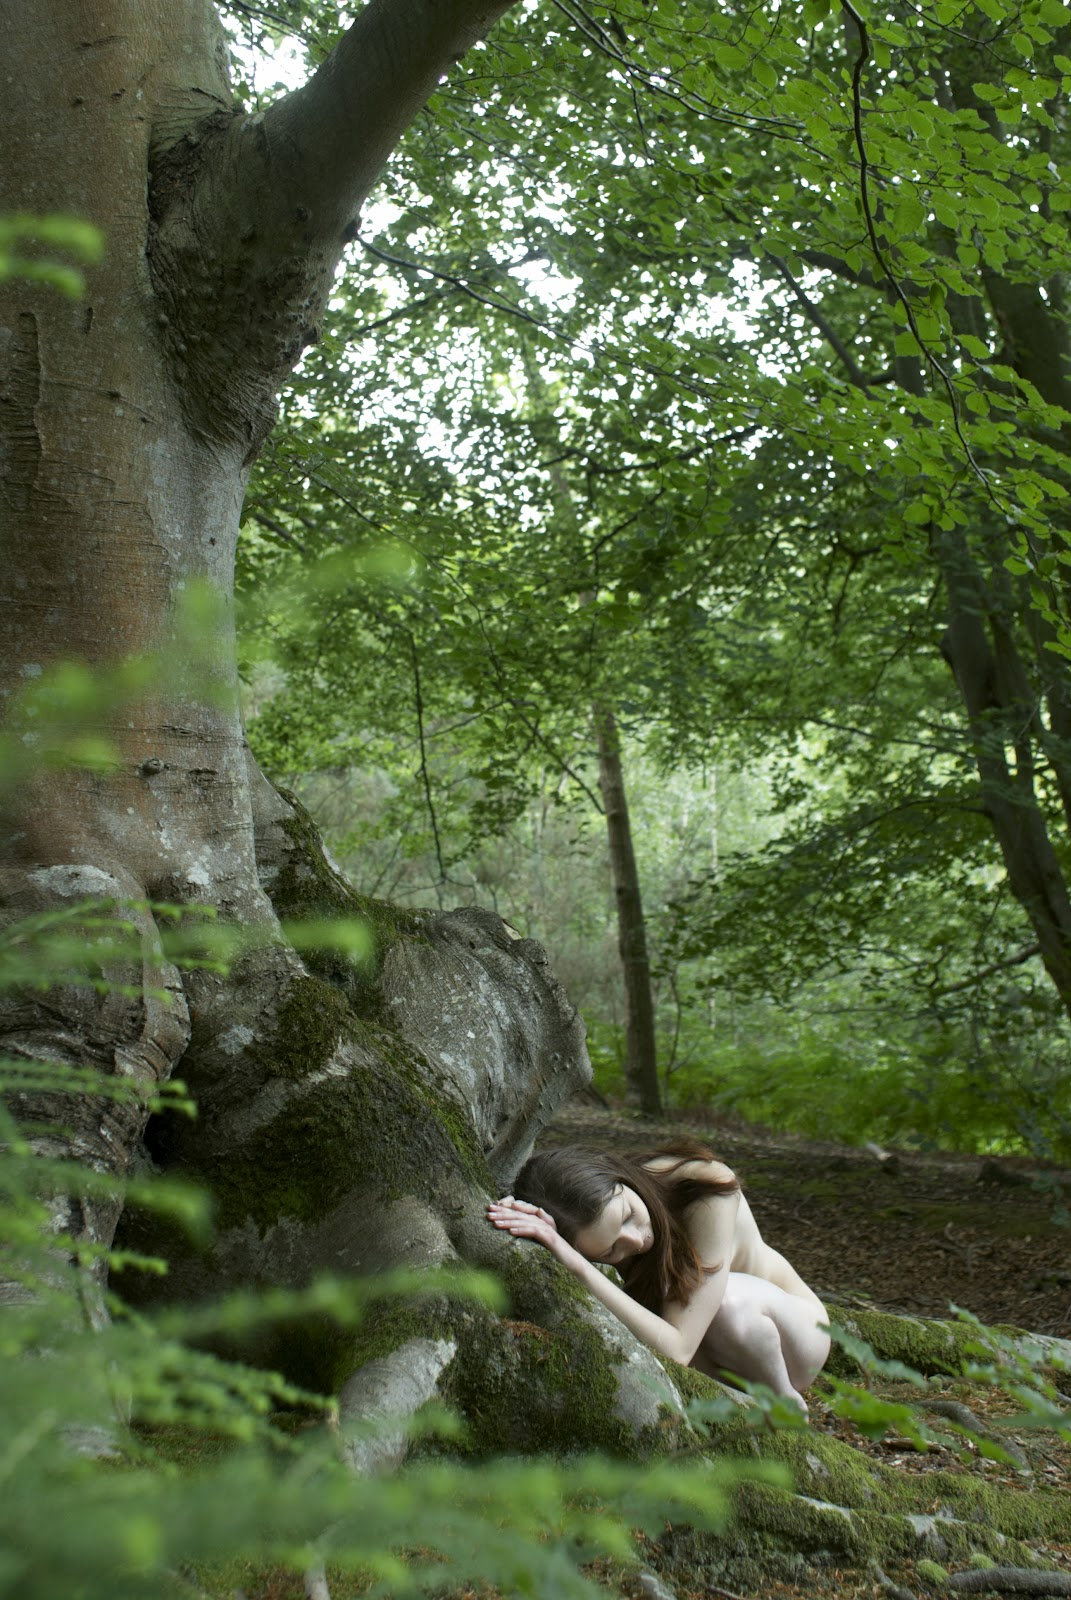 Nudecube Photo Project - Natural Landscapes